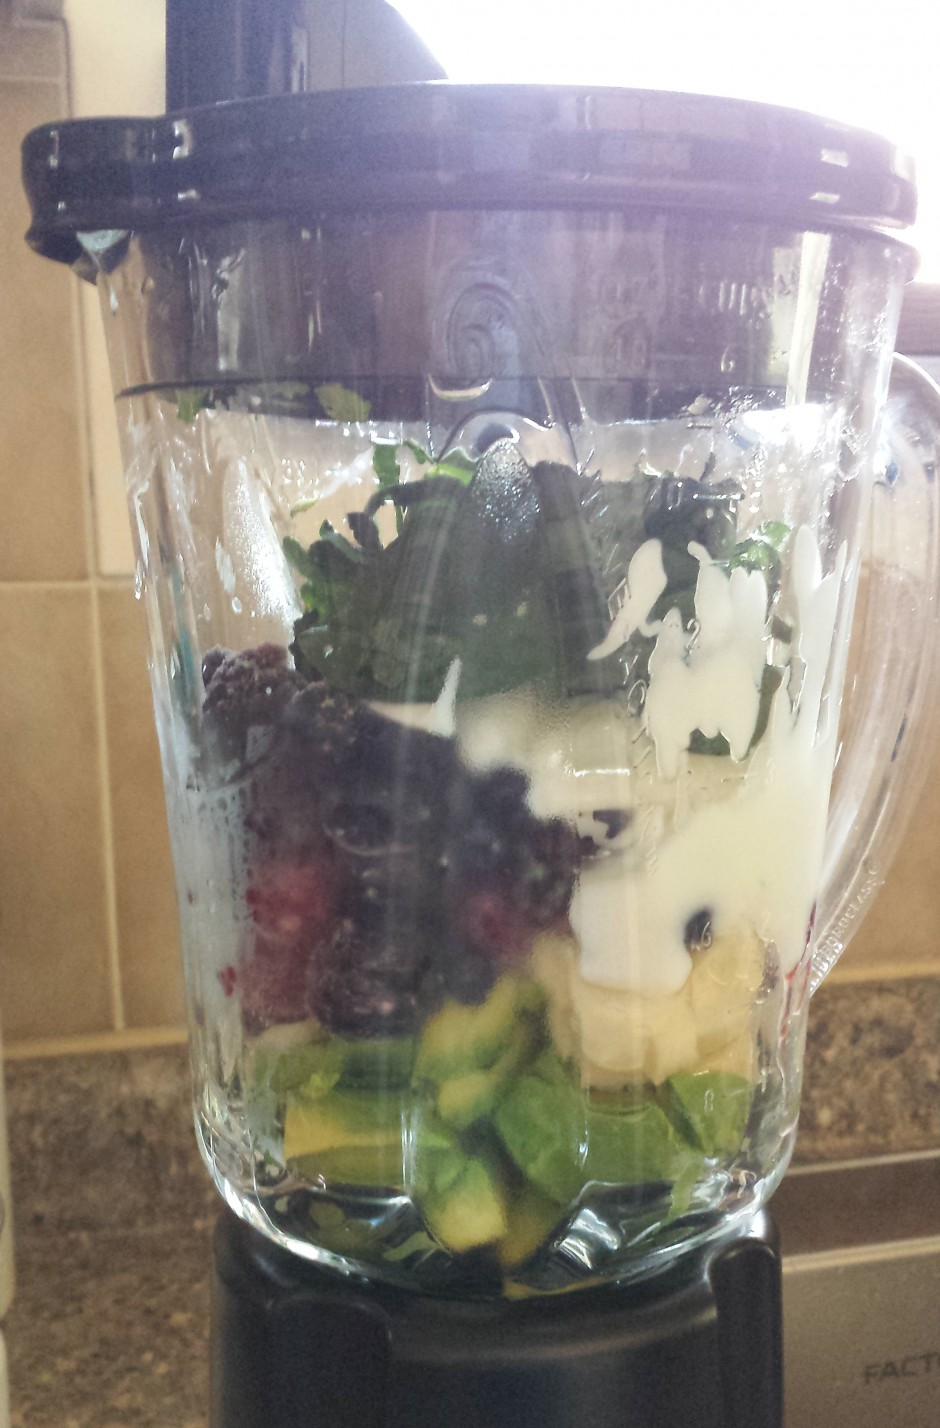 smoothie in a blender